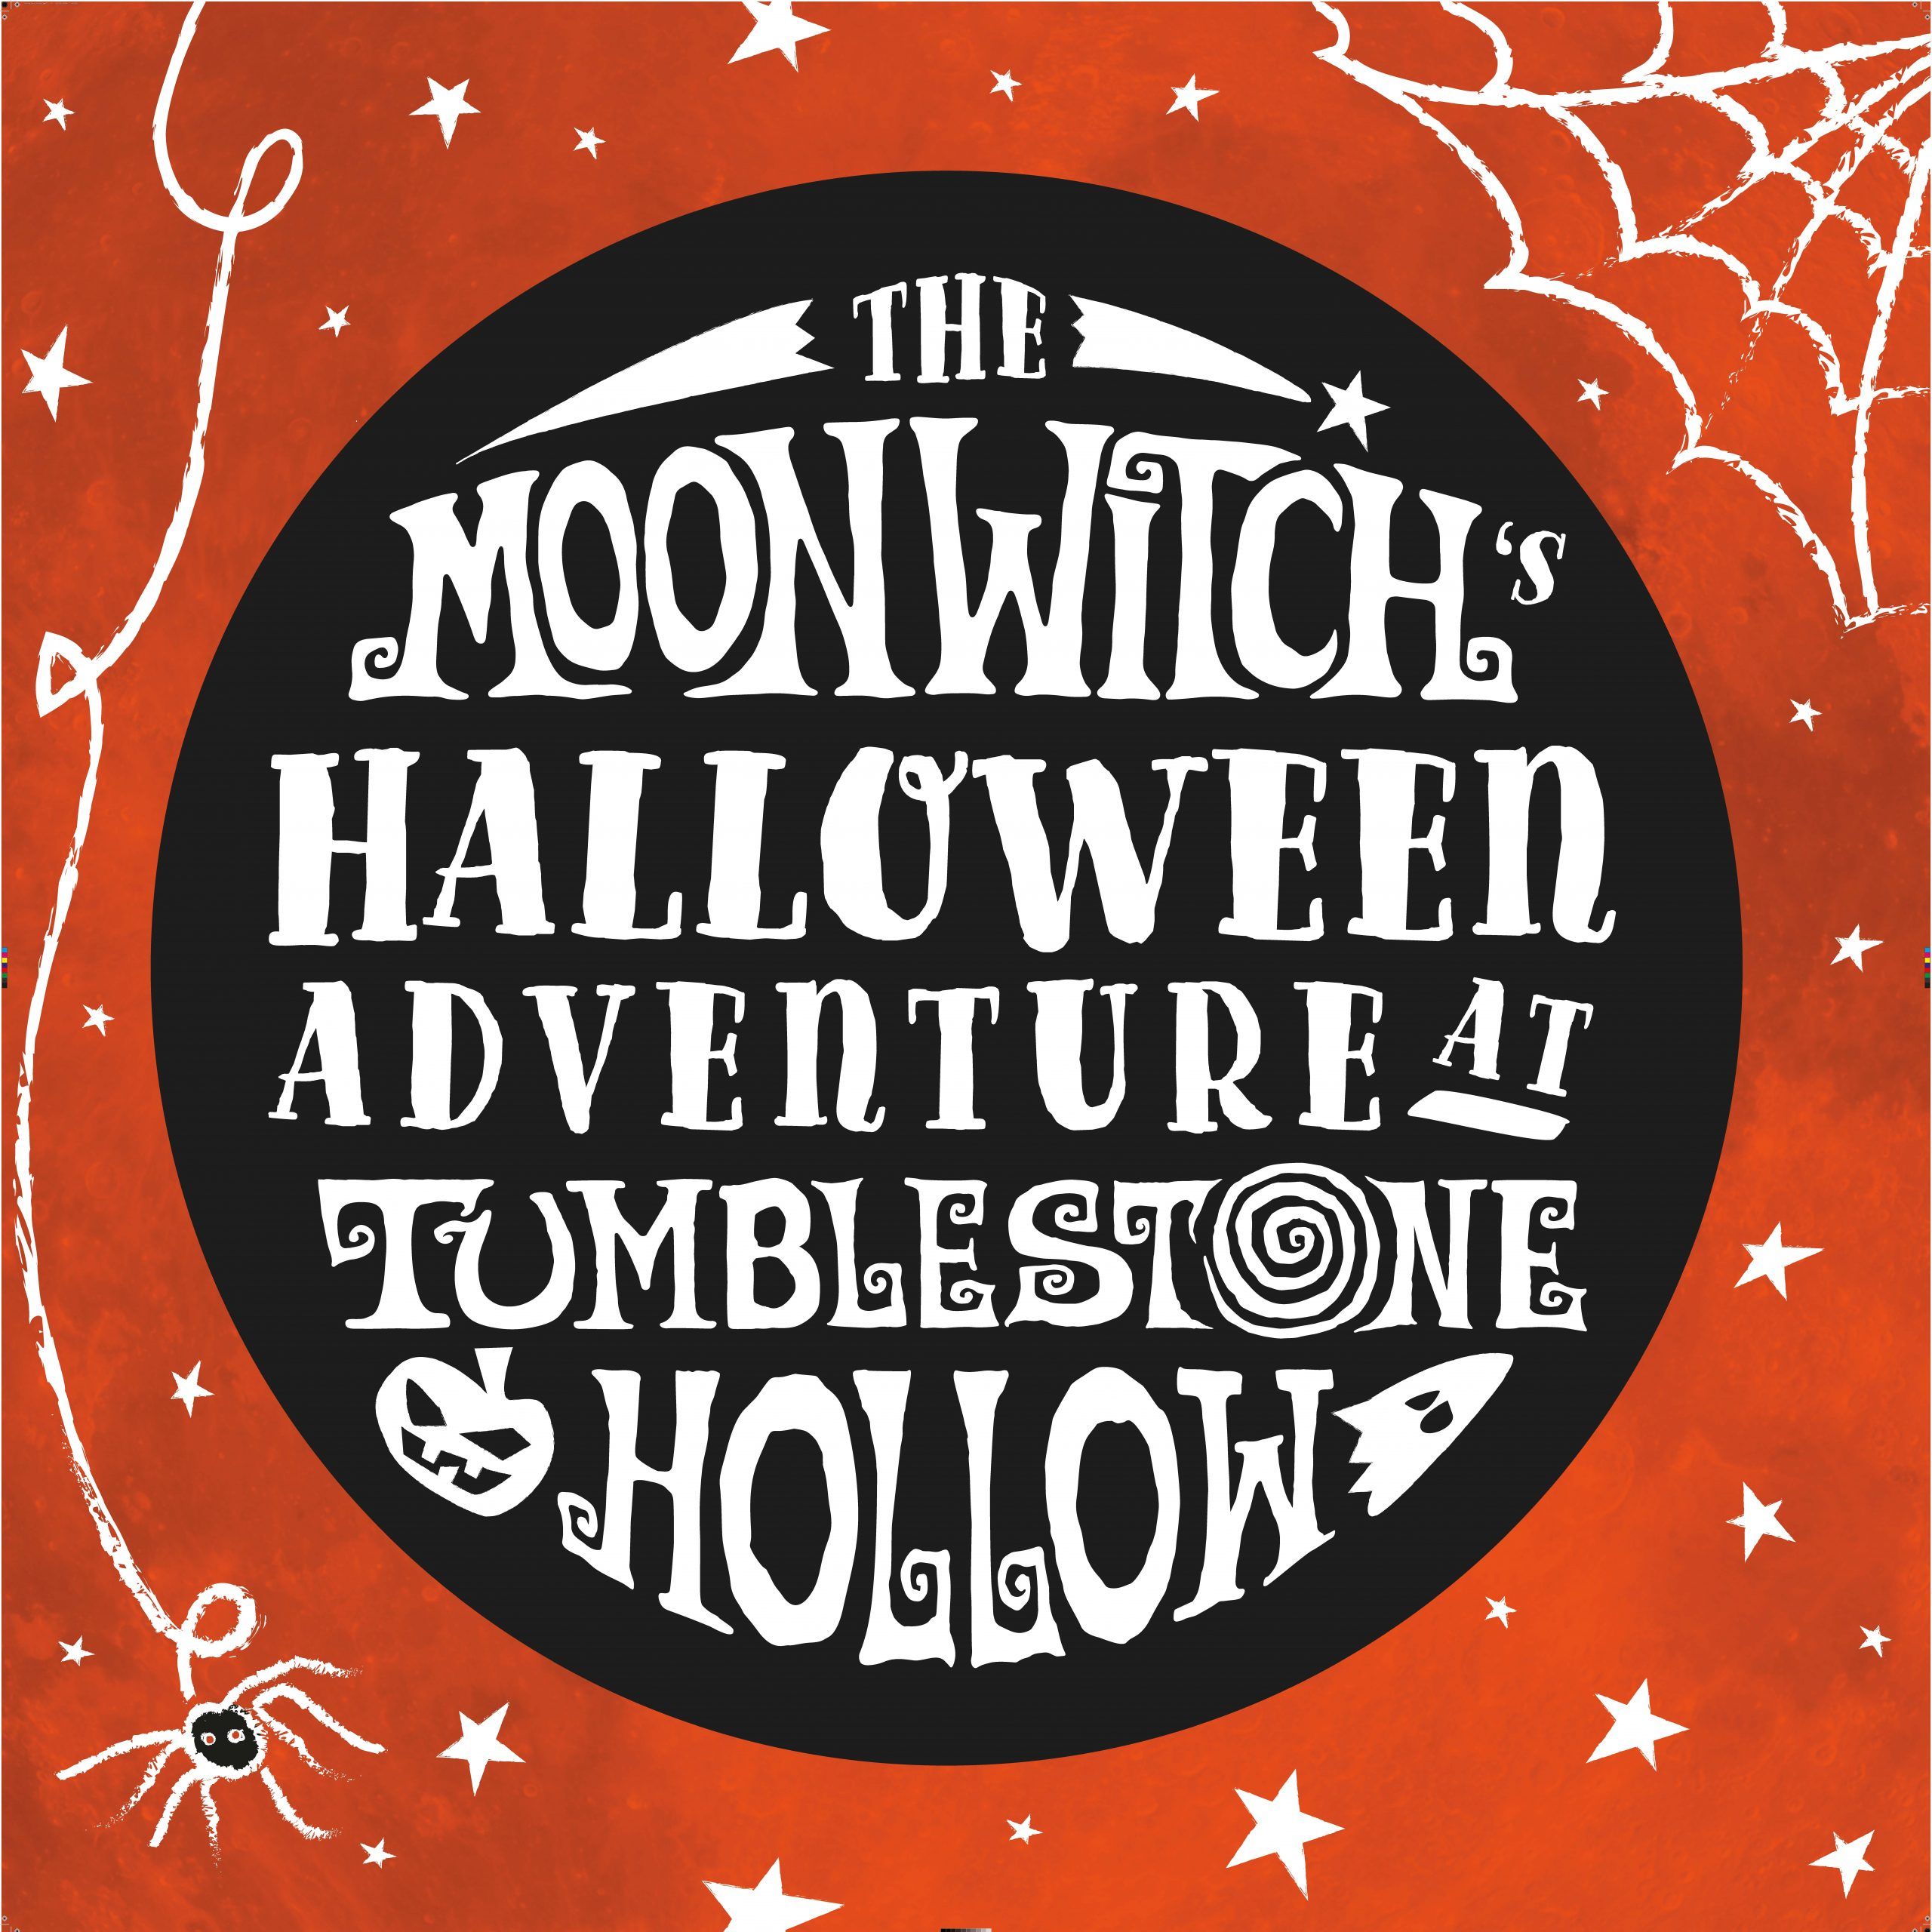 The Moon Witch's Halloween Adventure at Tumblestone Hollow